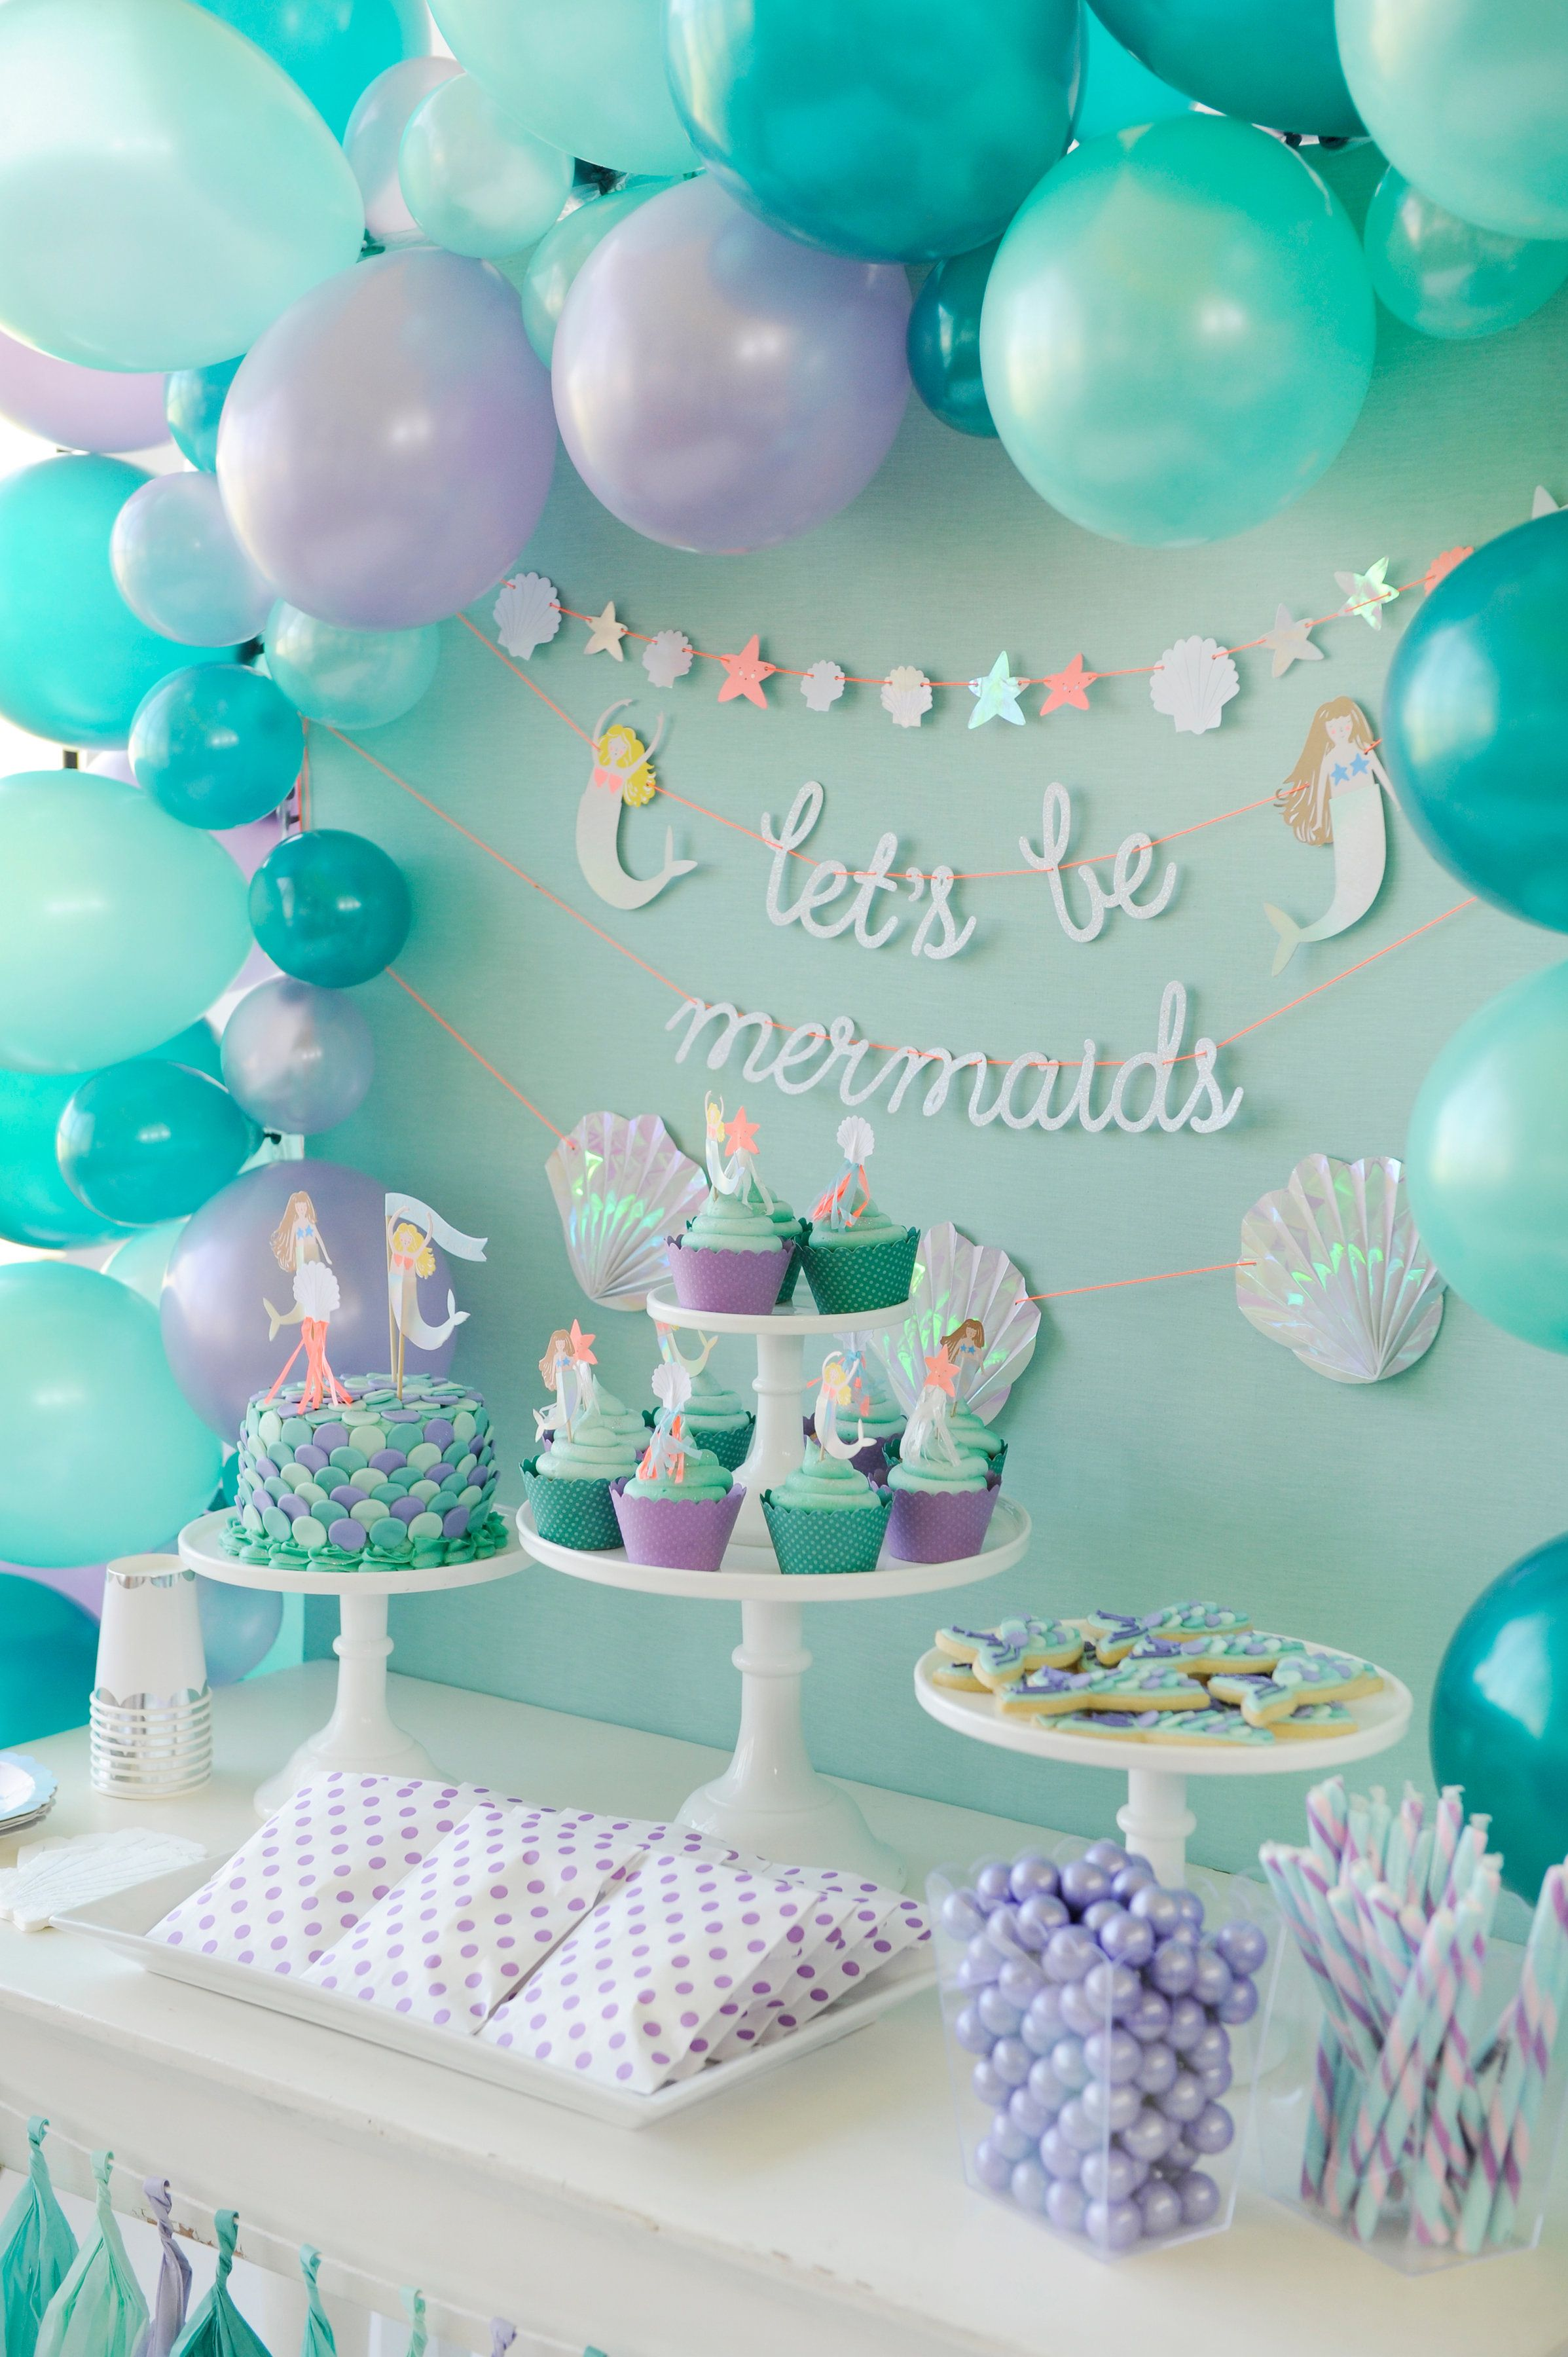 Mermaid Birthday Party Mermaid Birthday Party Supplies Mermaid